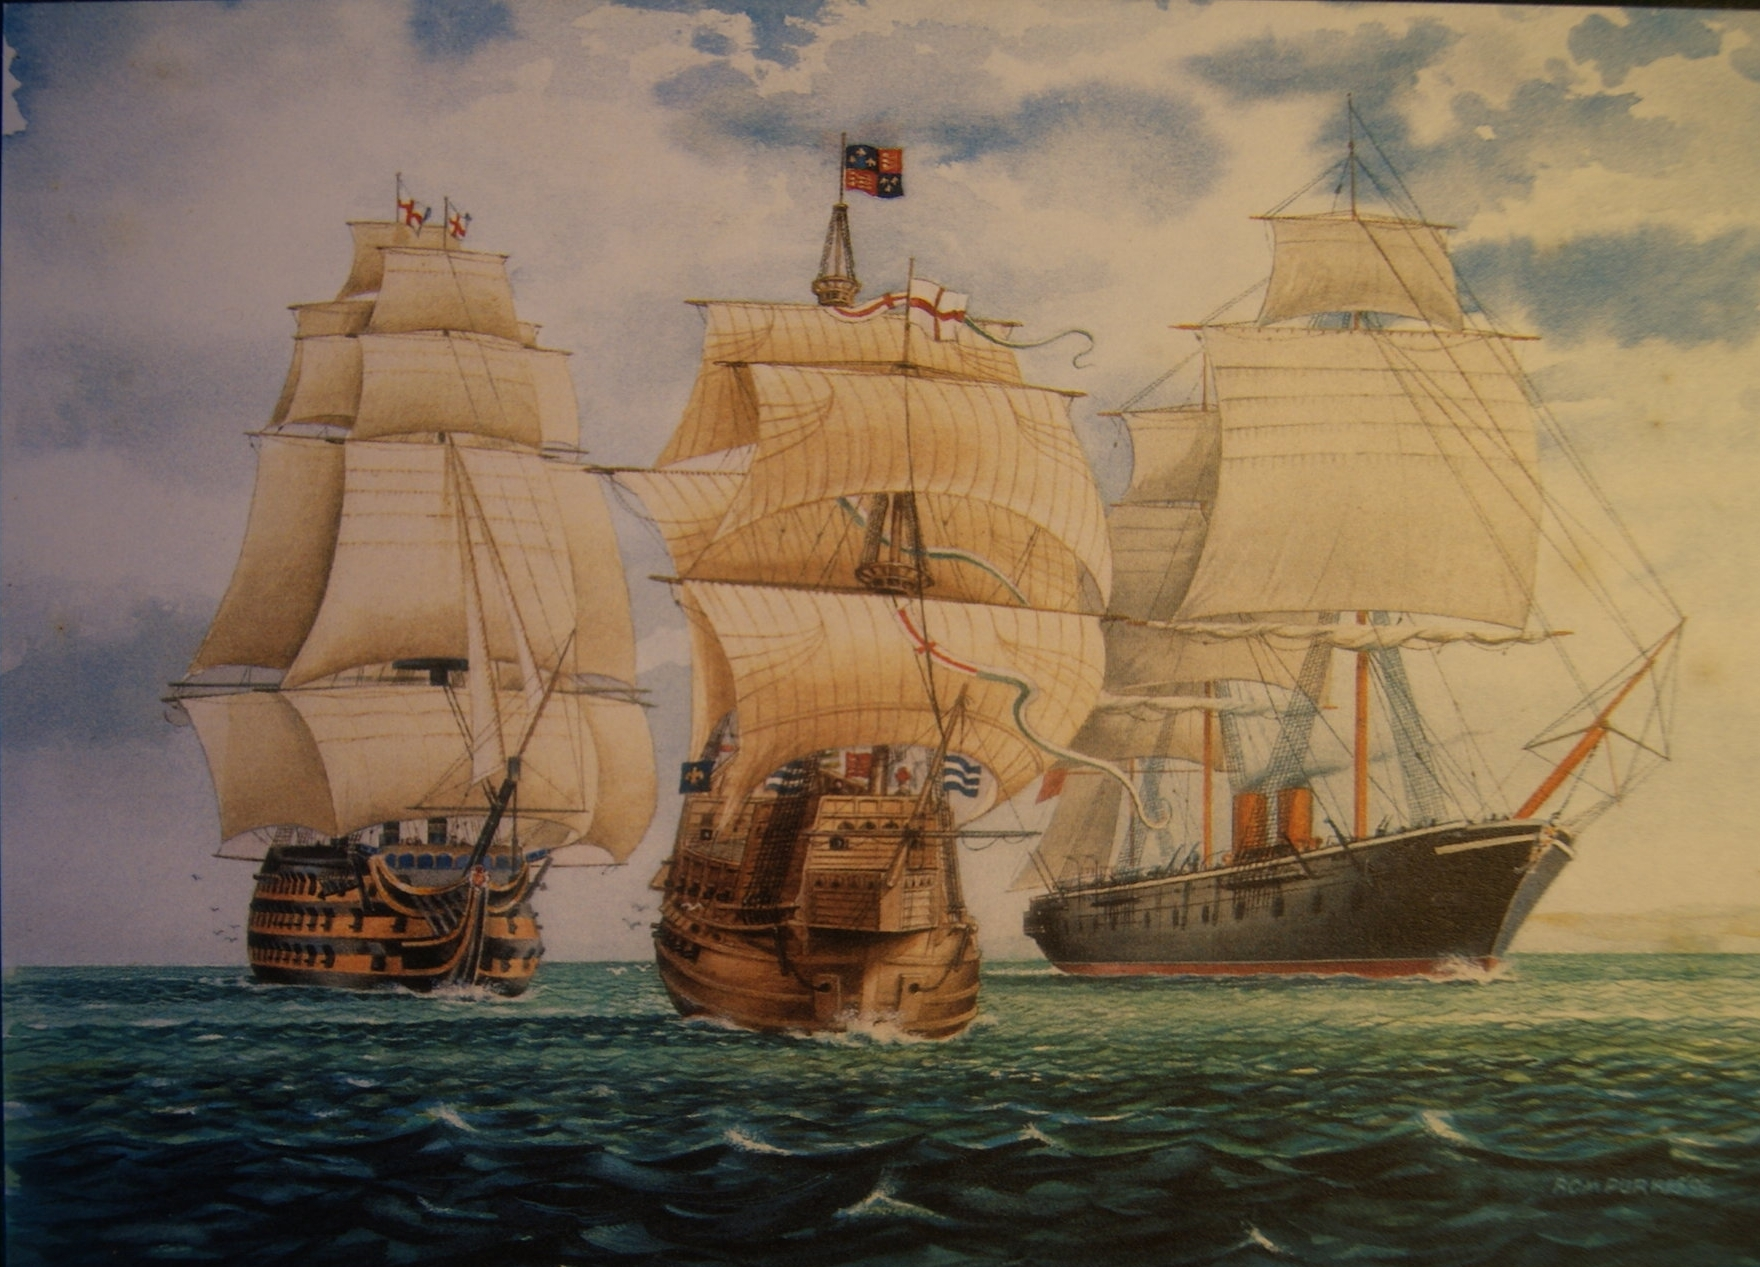 Wentworth jigsaw: The Victory, The Mary Rose,The Warrior